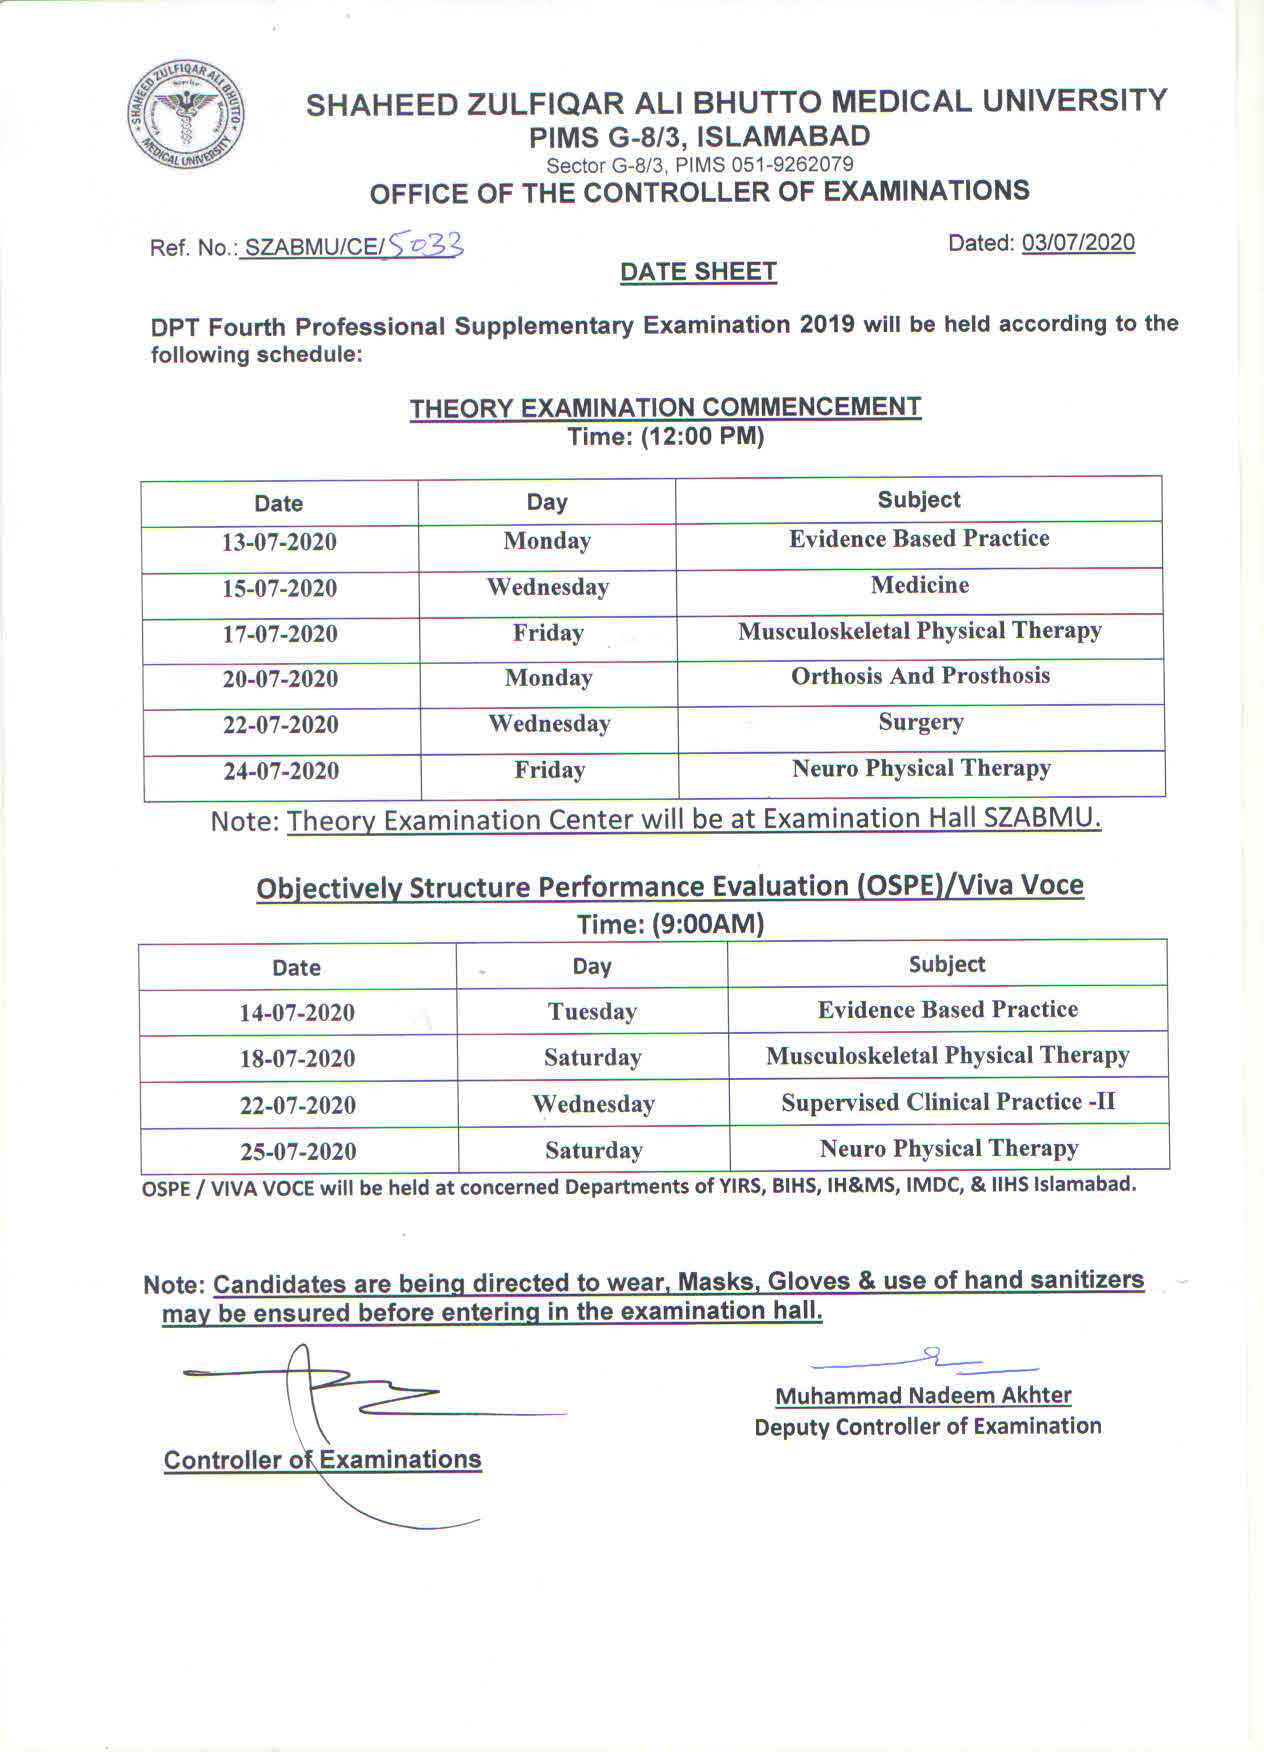 Date Sheets for DPT Supplementary Examination 2019